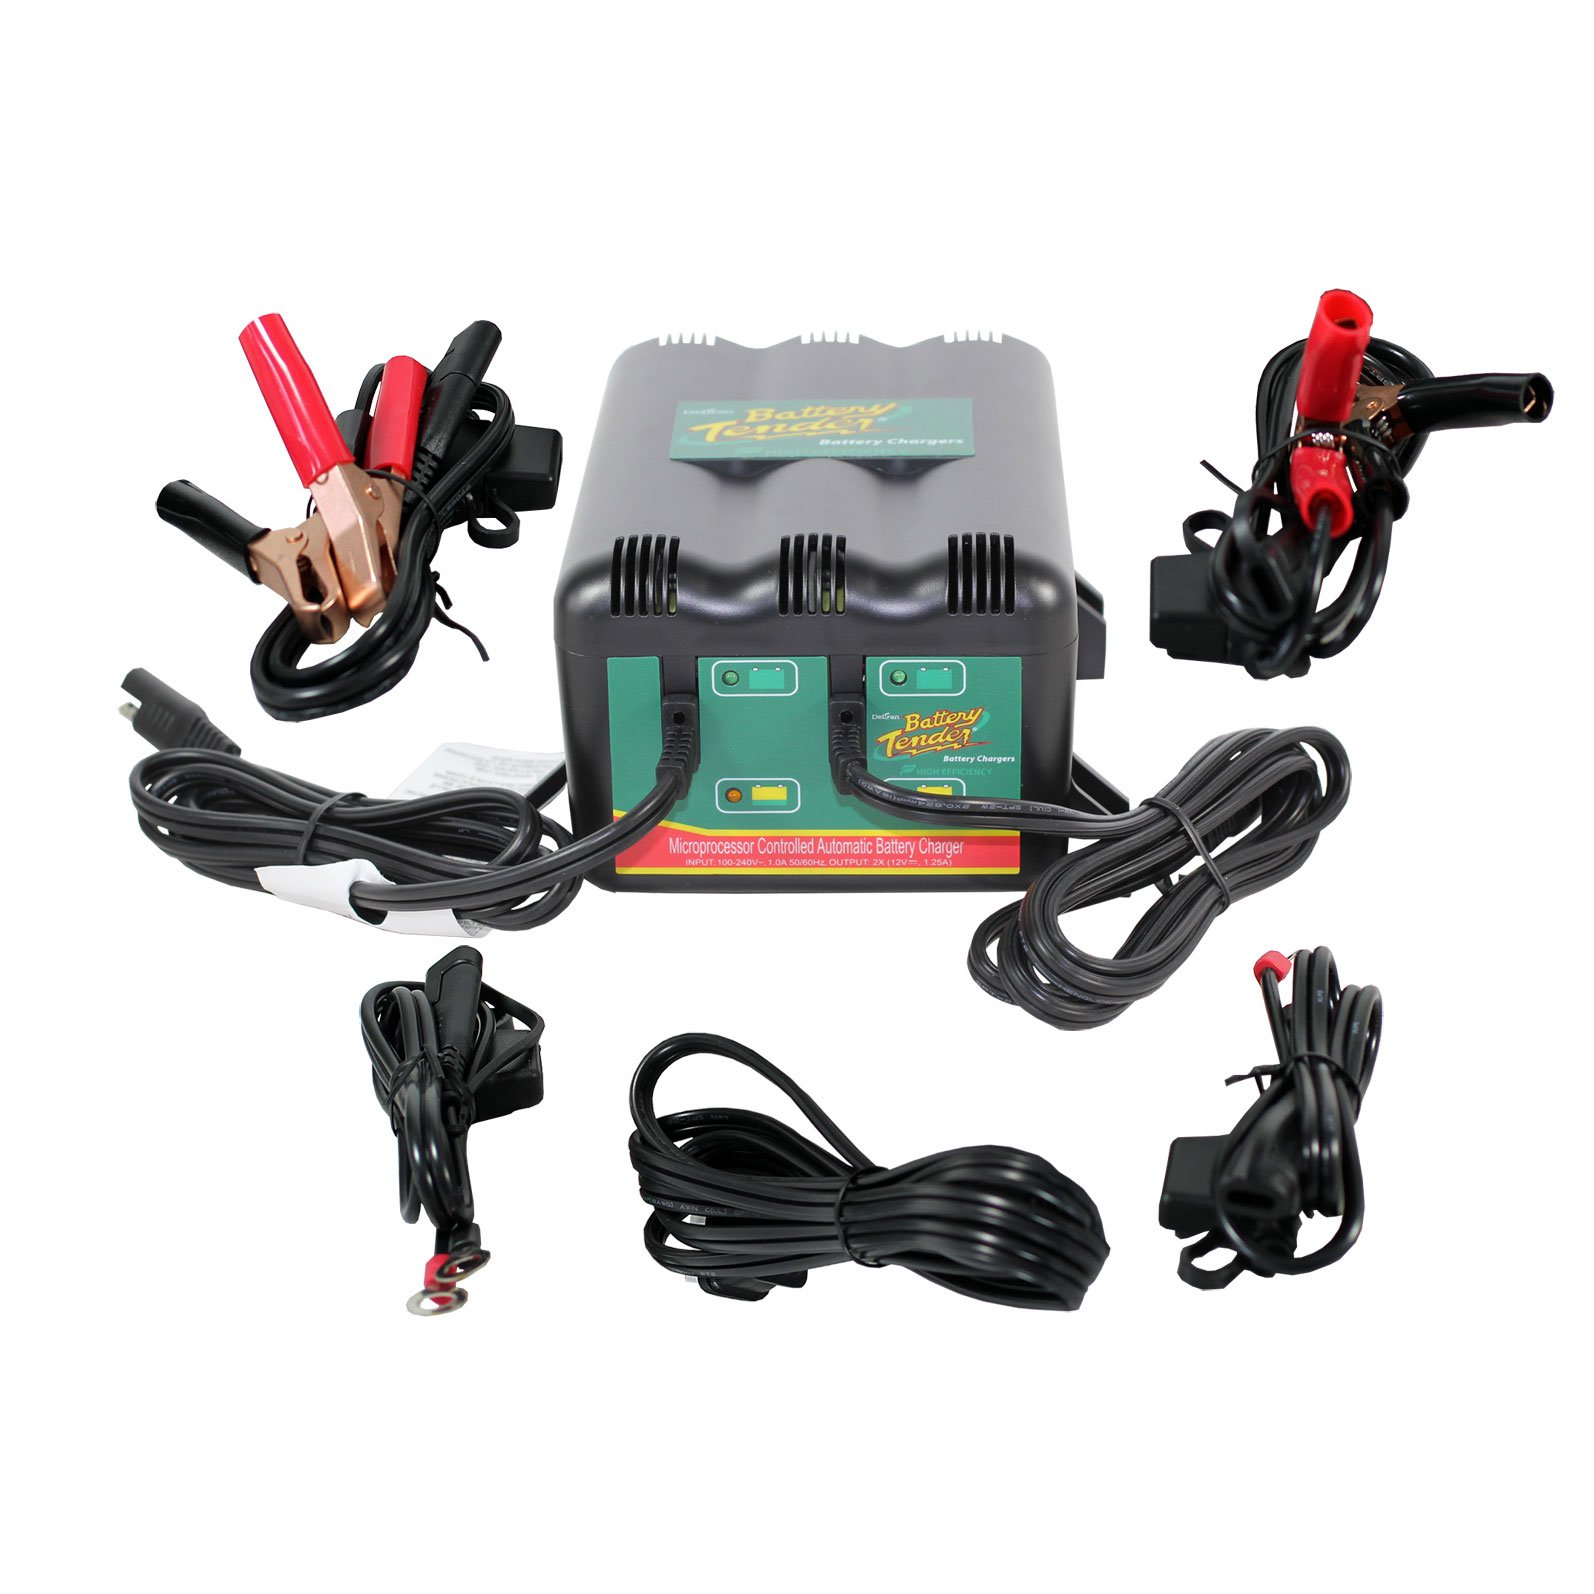 Battery Tender 12 Volt 125 Amp Charger 2 Banks Electrical Wiring California Compliant